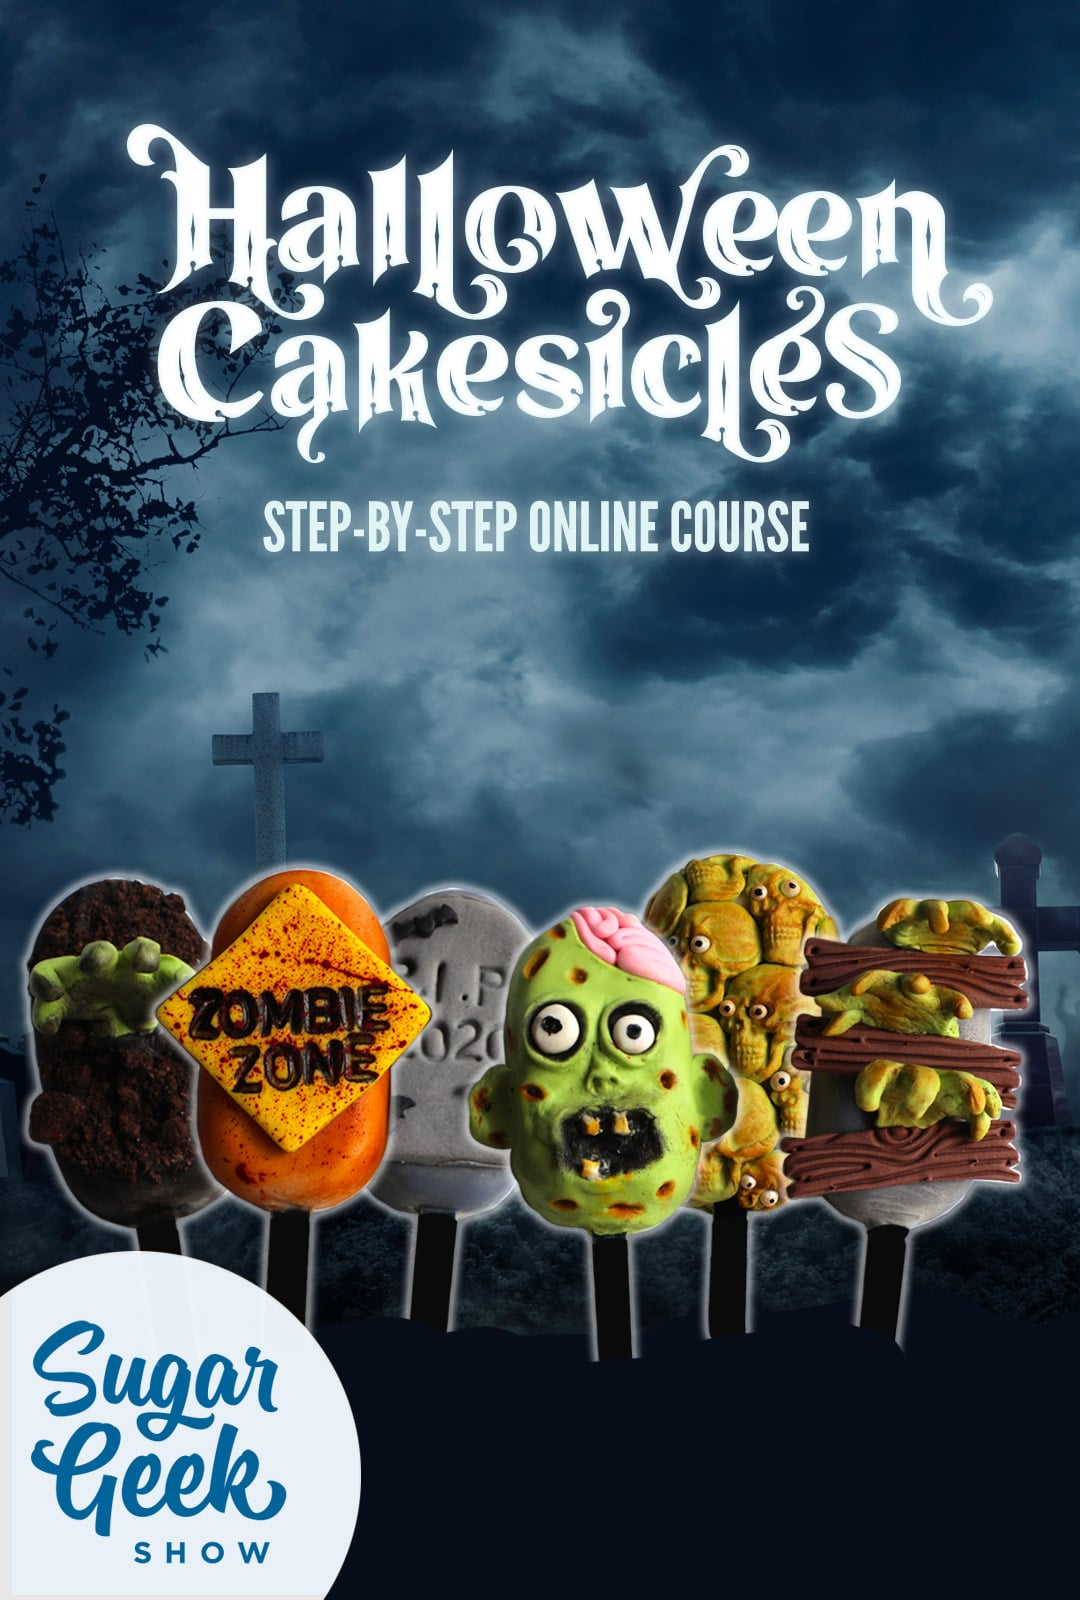 Halloween-themed cakesicles that look like zombies, tomestones, warning signs and zombie hands